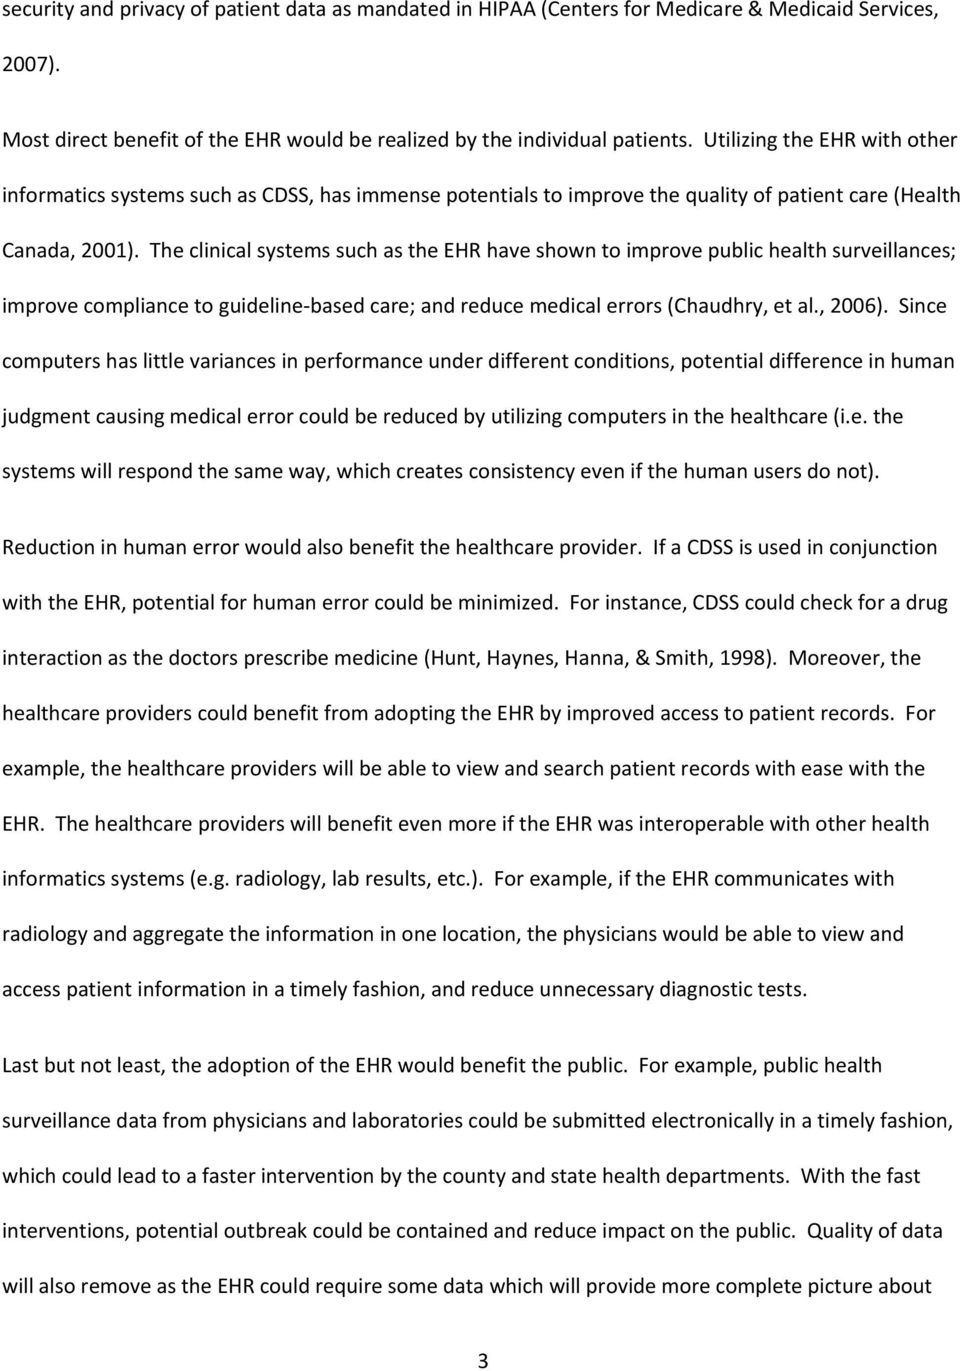 The clinical systems such as the EHR have shown to improve public health surveillances; improve compliance to guideline based care; and reduce medical errors (Chaudhry, et al., 2006).